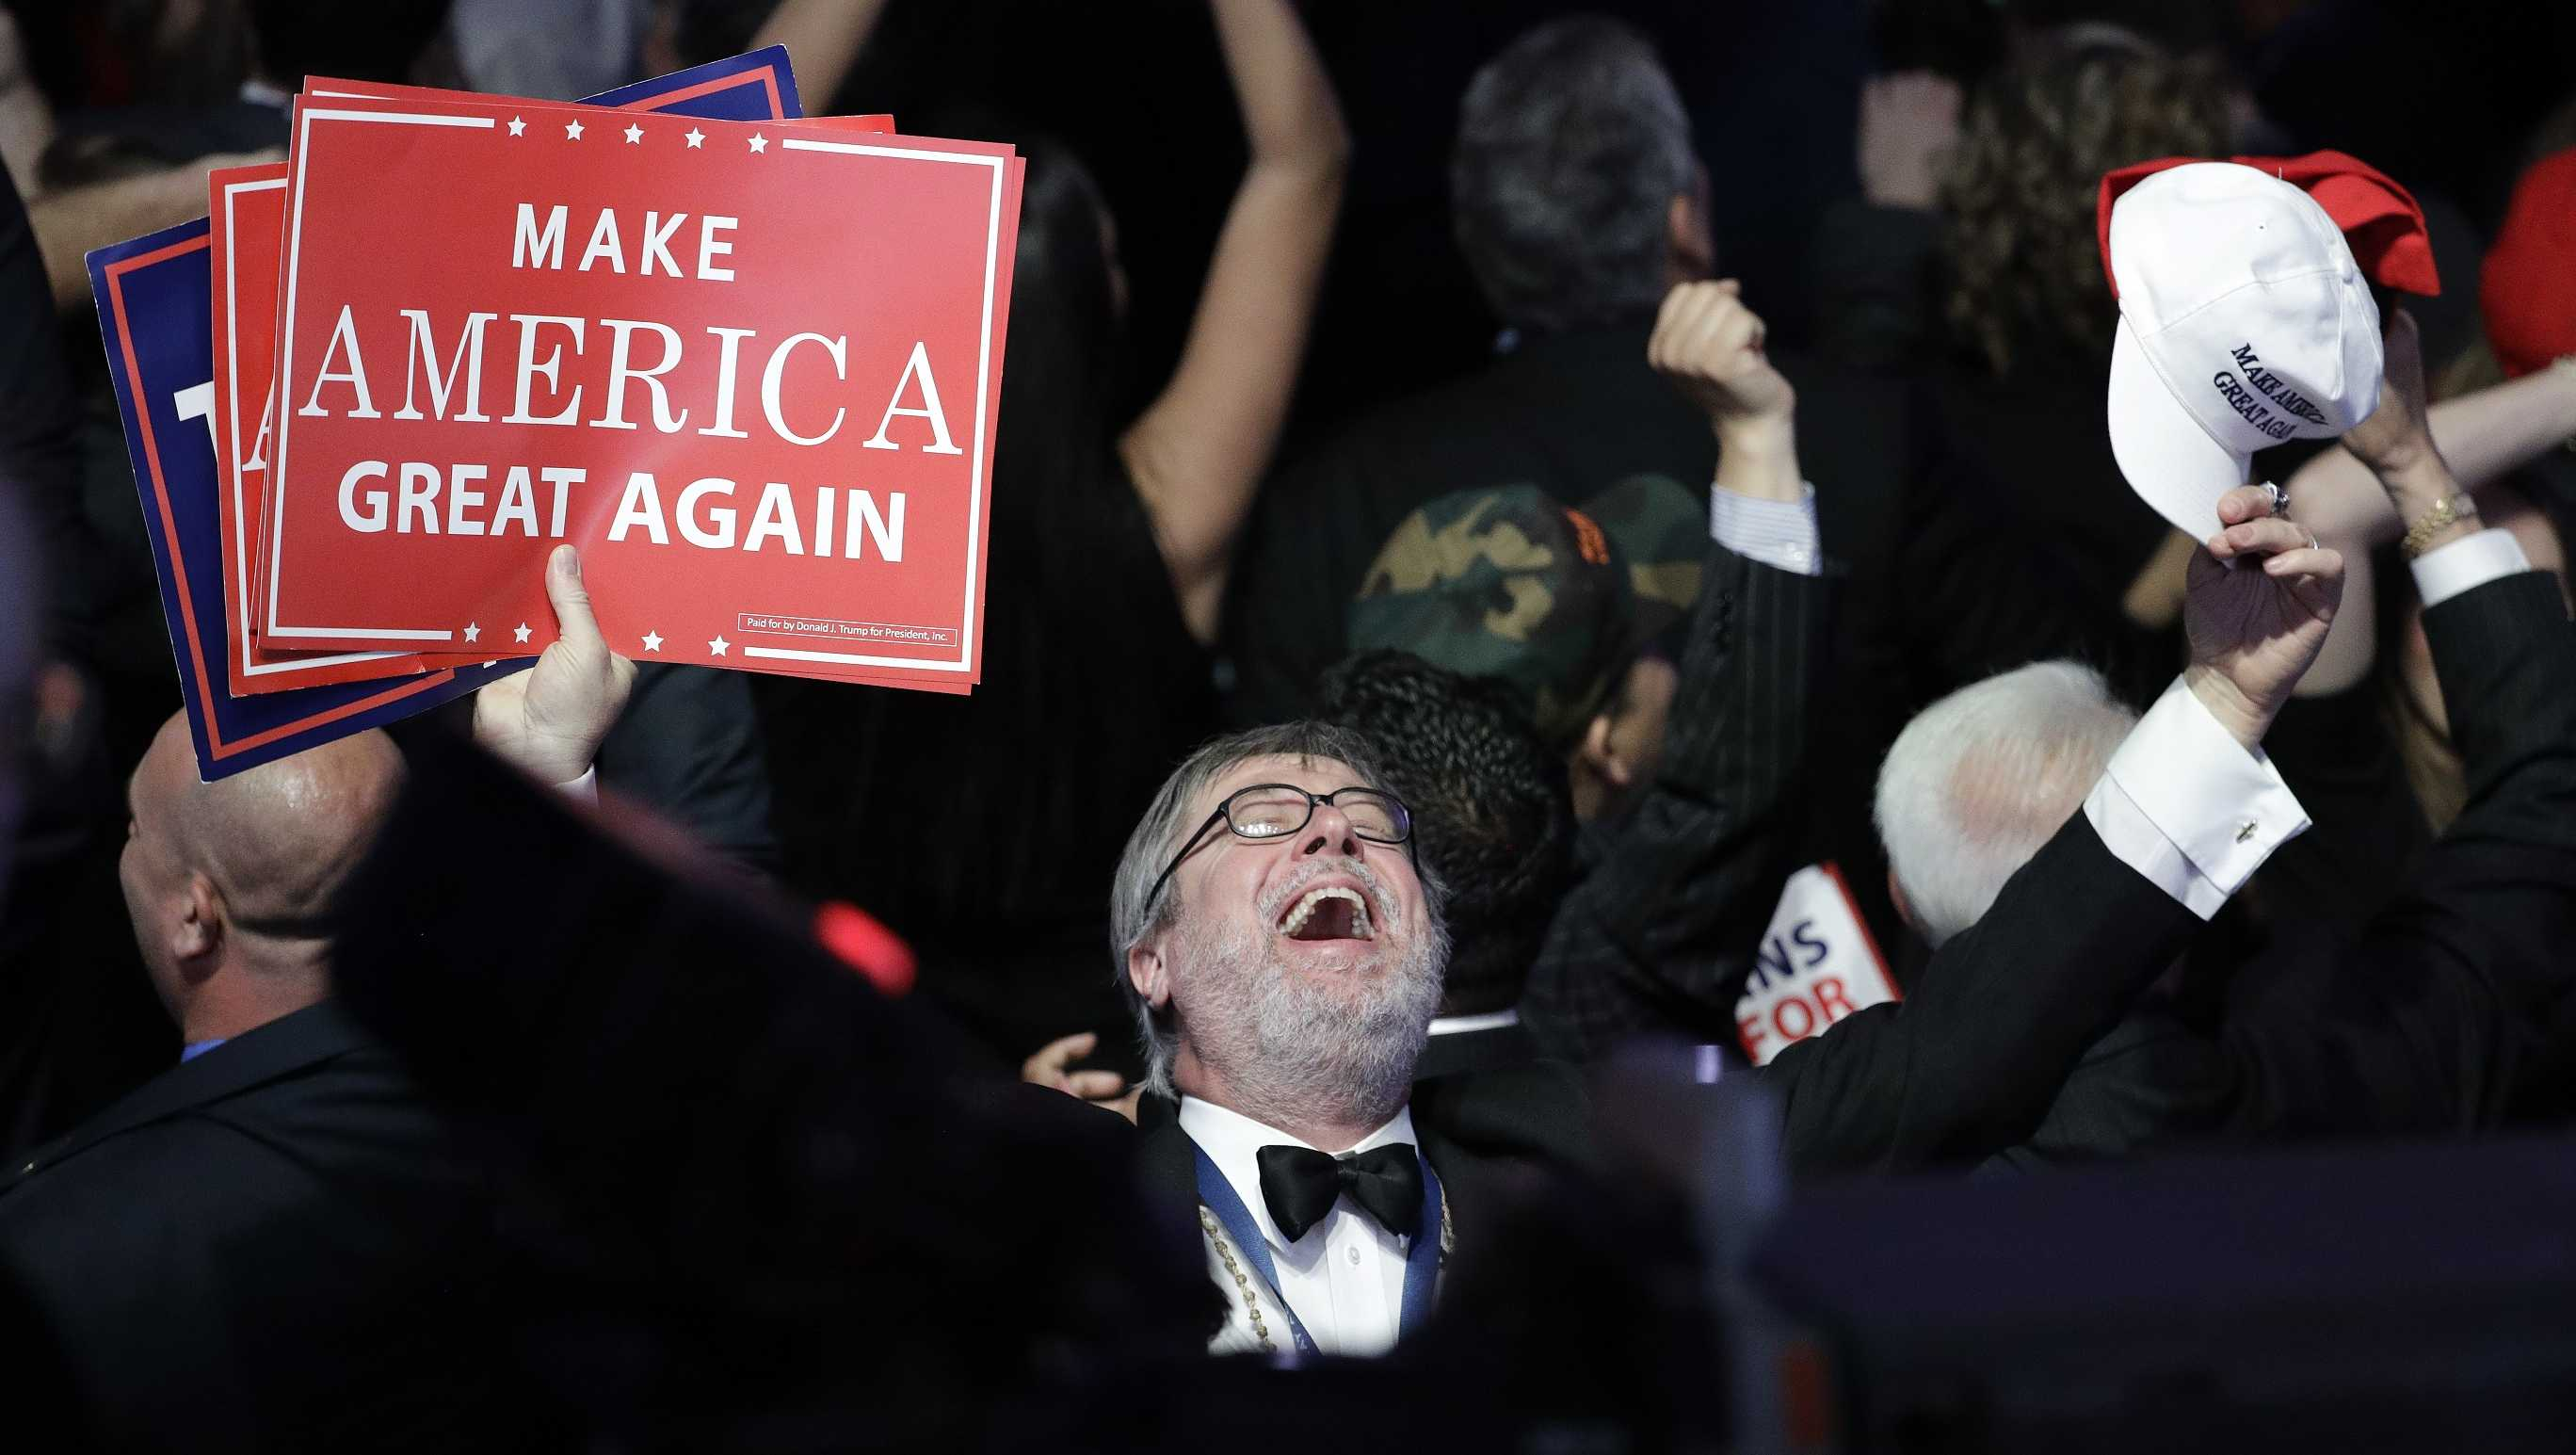 Supporters of Republican presidential candidate Donald Trump react as they watch the election results during Trump's election night rally.